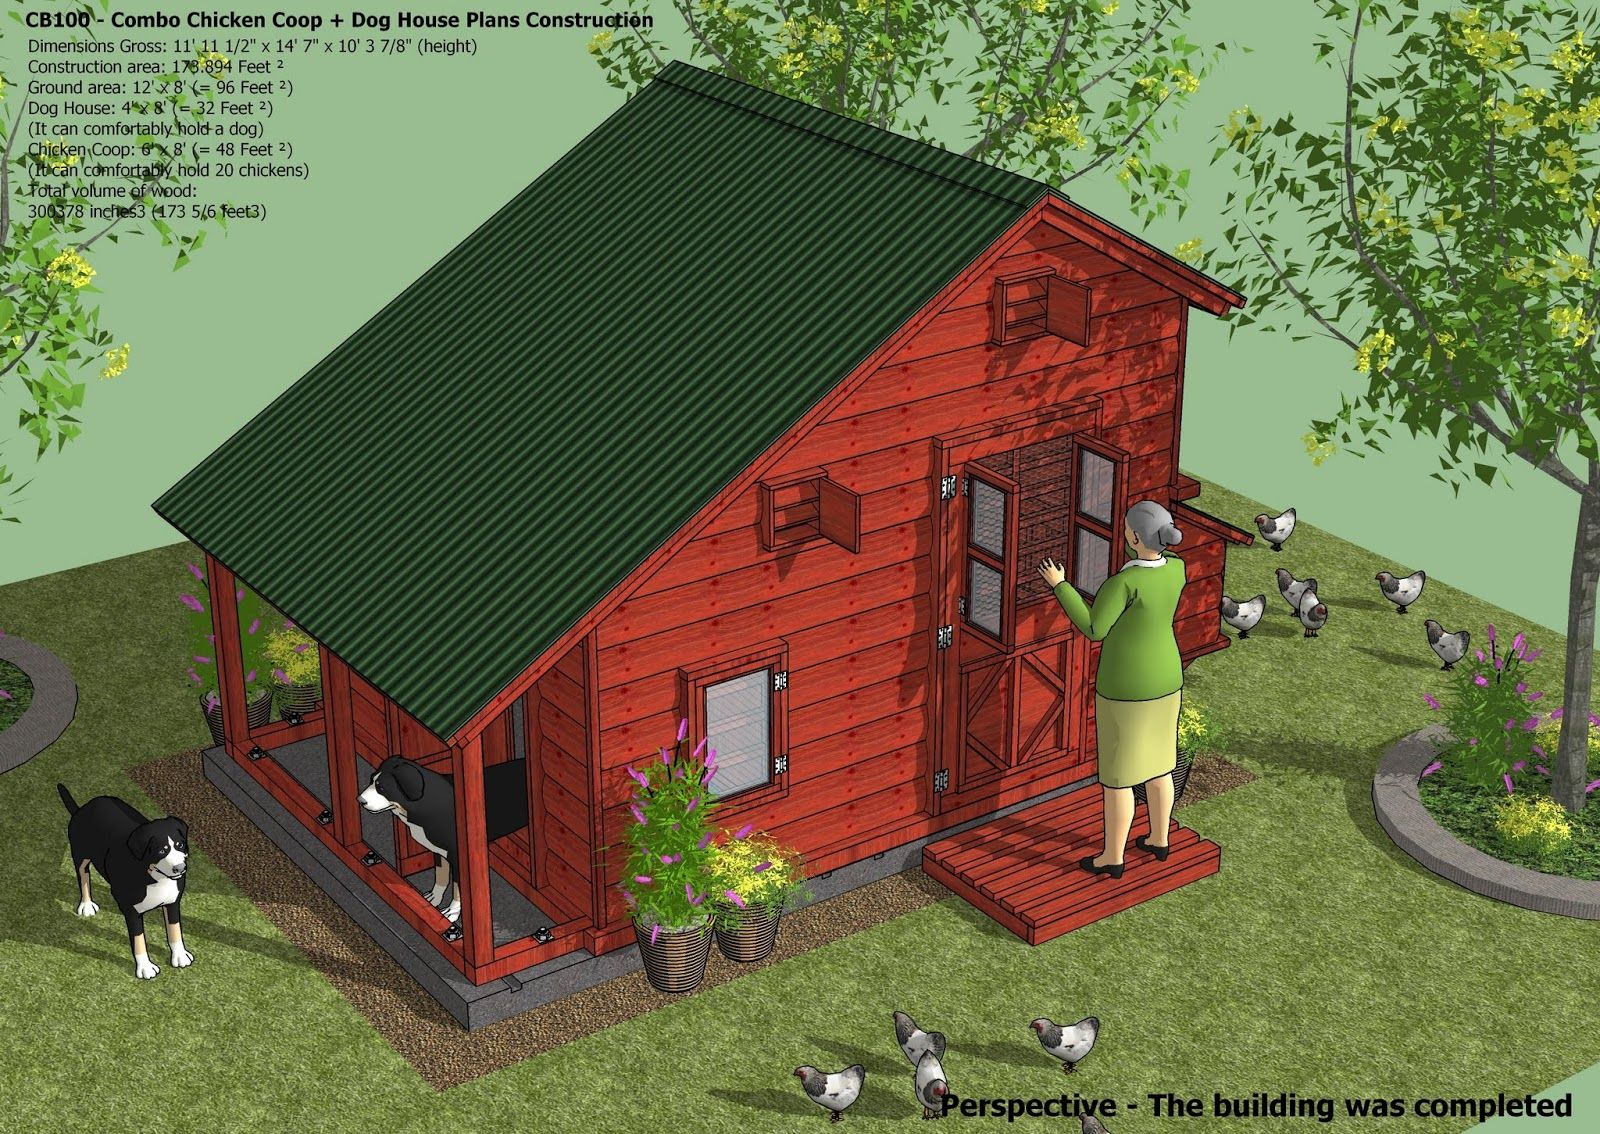 Cb100 Combo Plans Chicken Coop Plans Construction Insulated